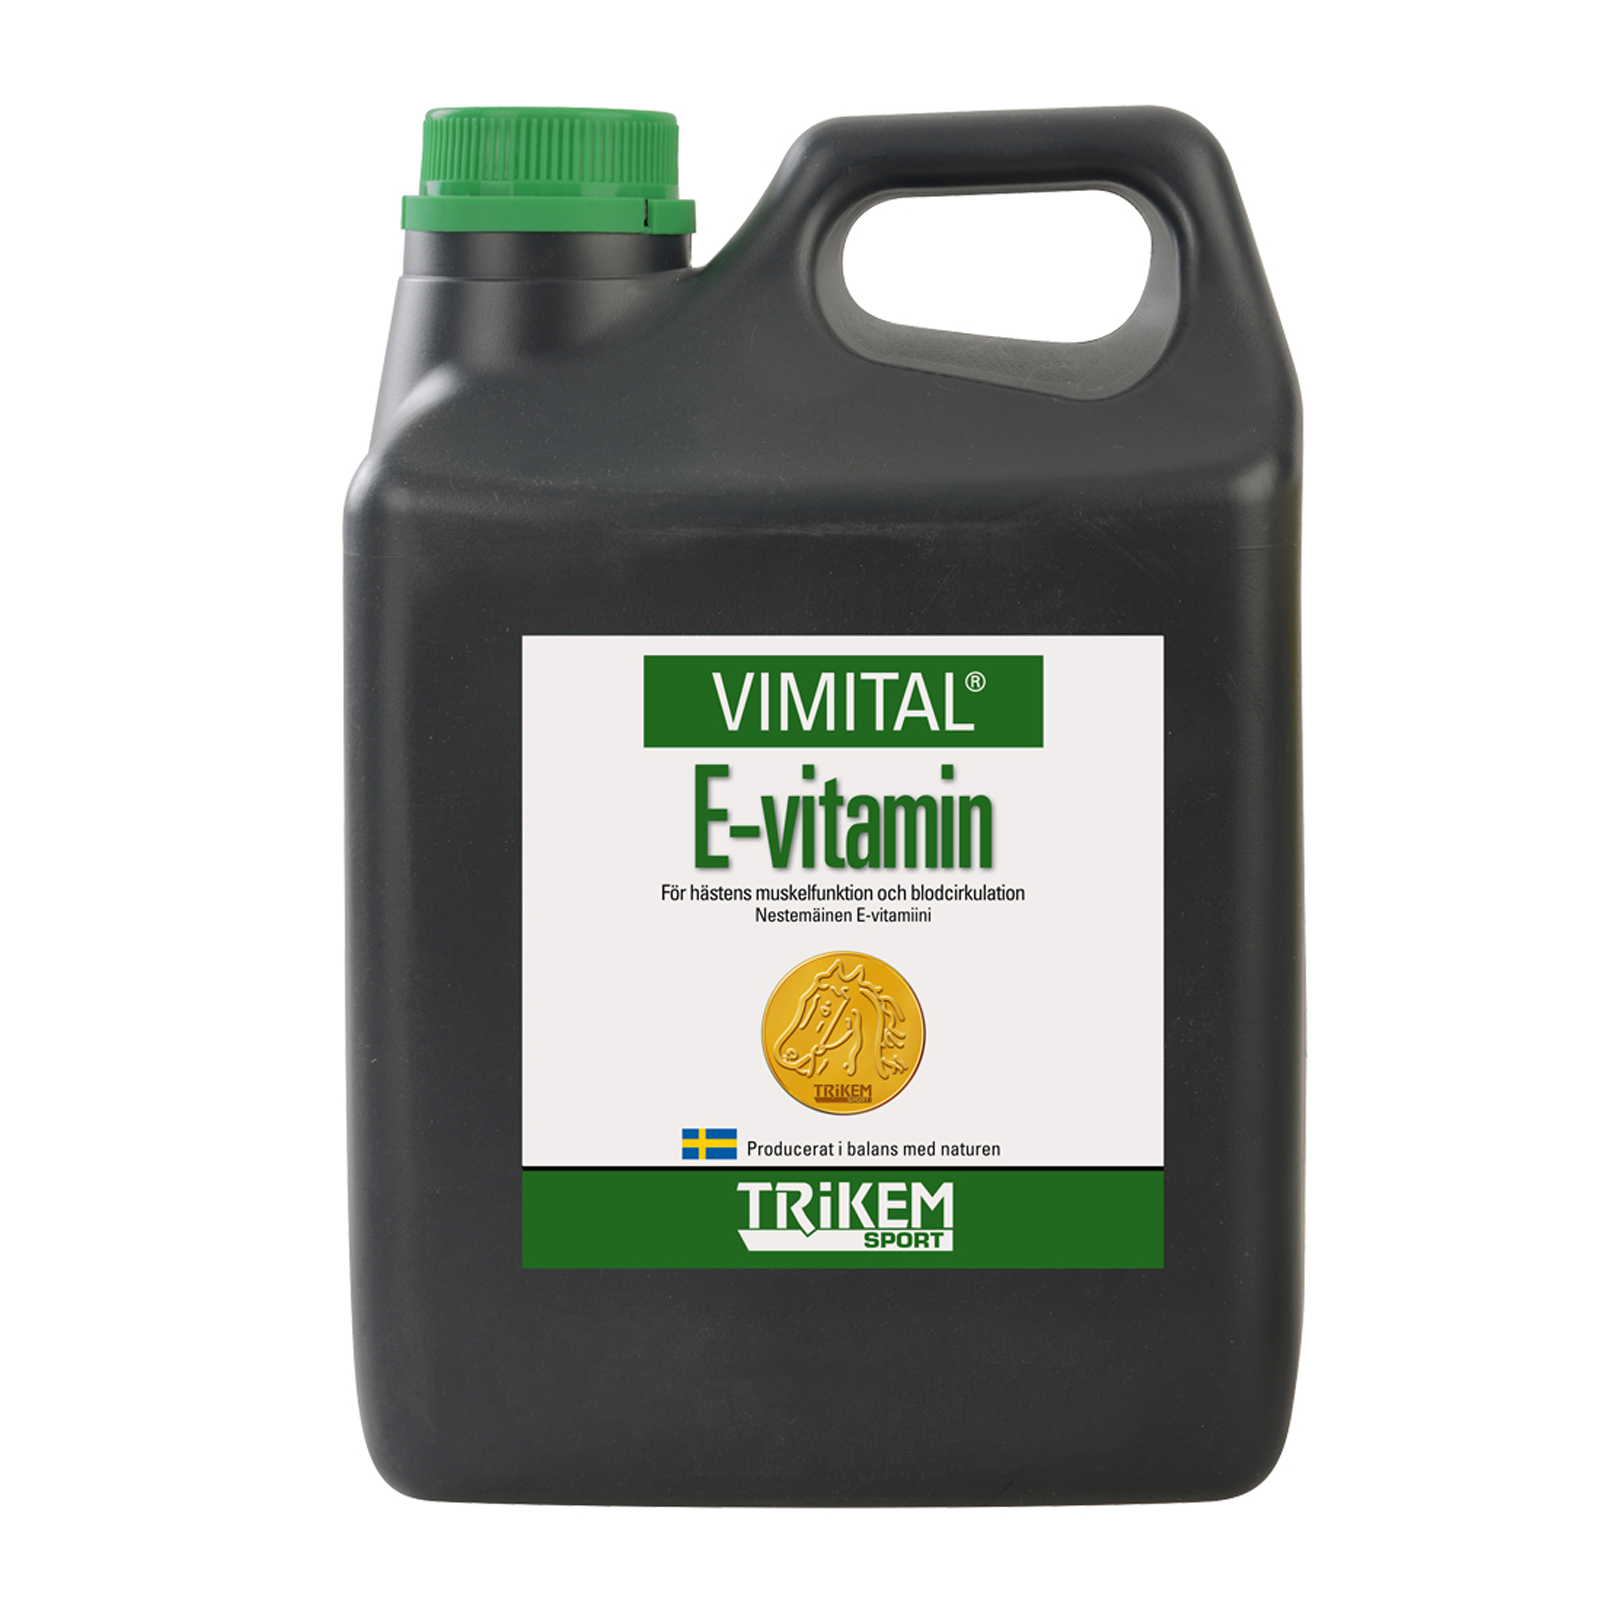 Trikem Vimital E-vitamin 2500 ml